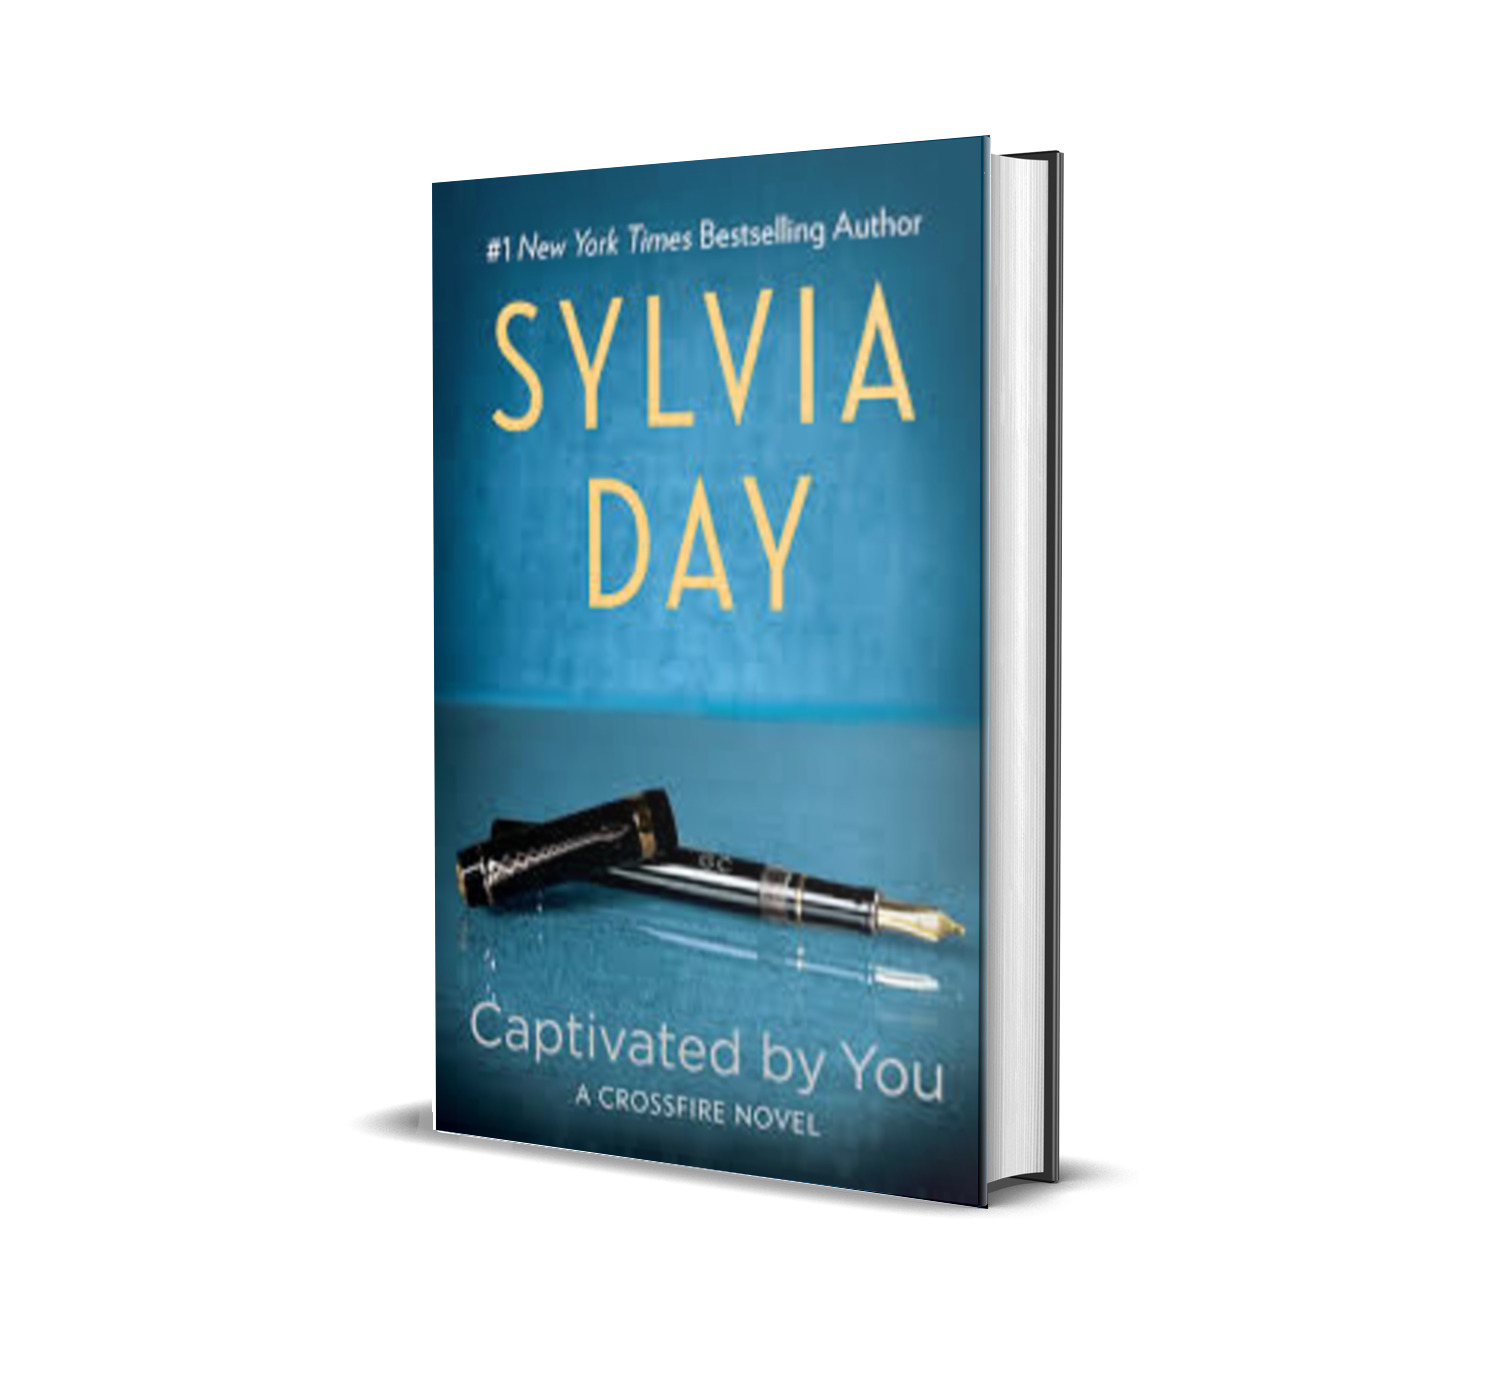 Captivated by You - Sylvia Day [Crossfire 4]